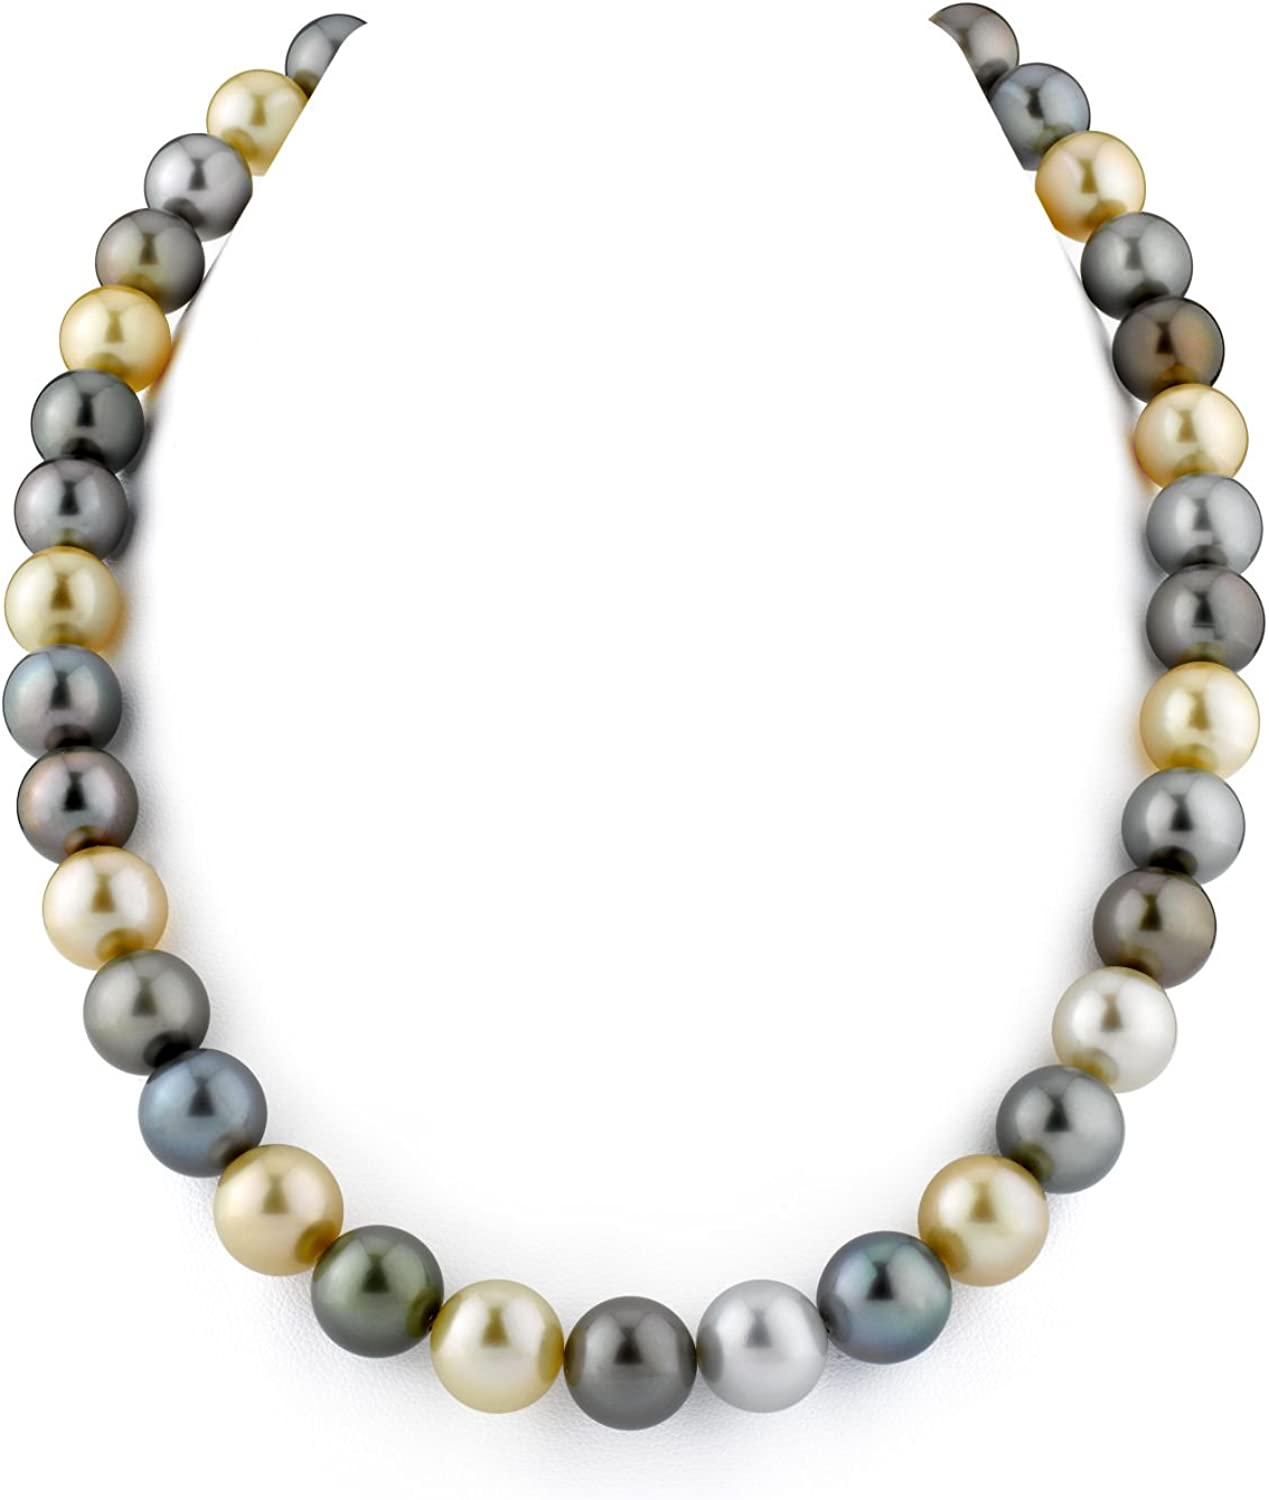 THE PEARL SOURCE 14K Gold Round White Freshwater Cultured Pearl Necklace /& Earrings Set in 17 Princess Length for Women